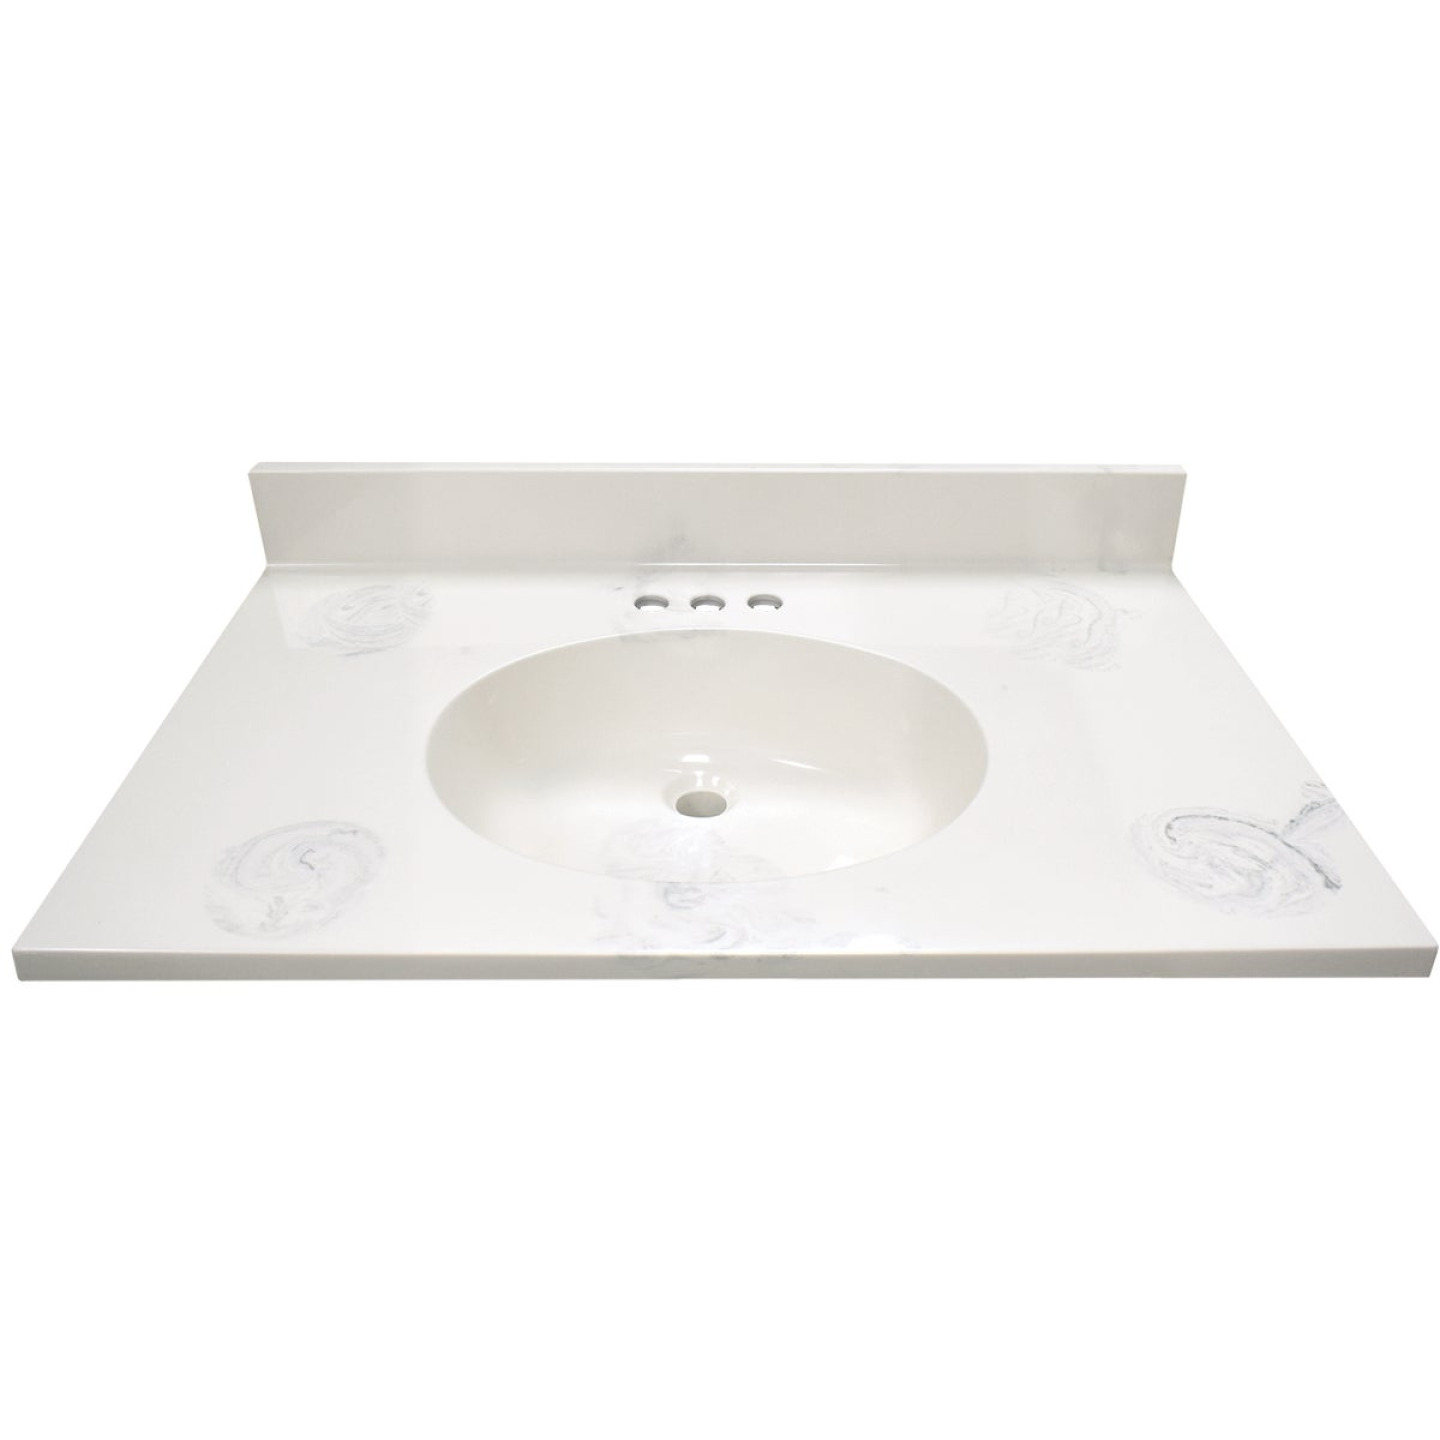 Modular Vanity Tops 31 In. W x 22 In. D Marbled Dove Gray Cultured Marble Flat Edge Vanity Top with Oval Bowl Image 1